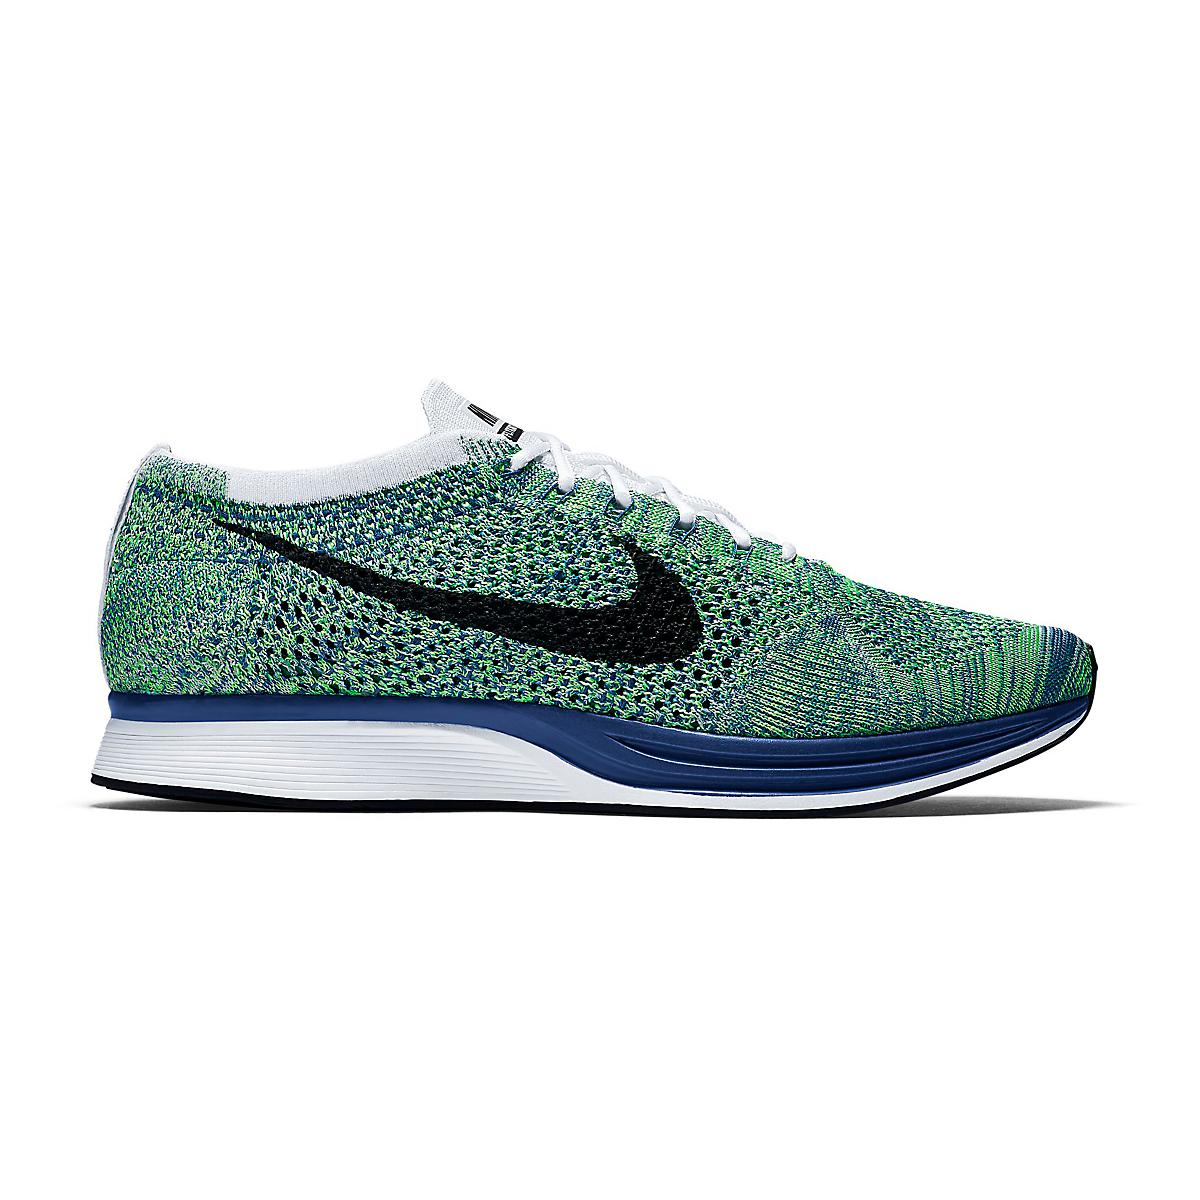 9fa48cd0f880f coupon code for tenis nike flyknit racer 5e876 a20d6